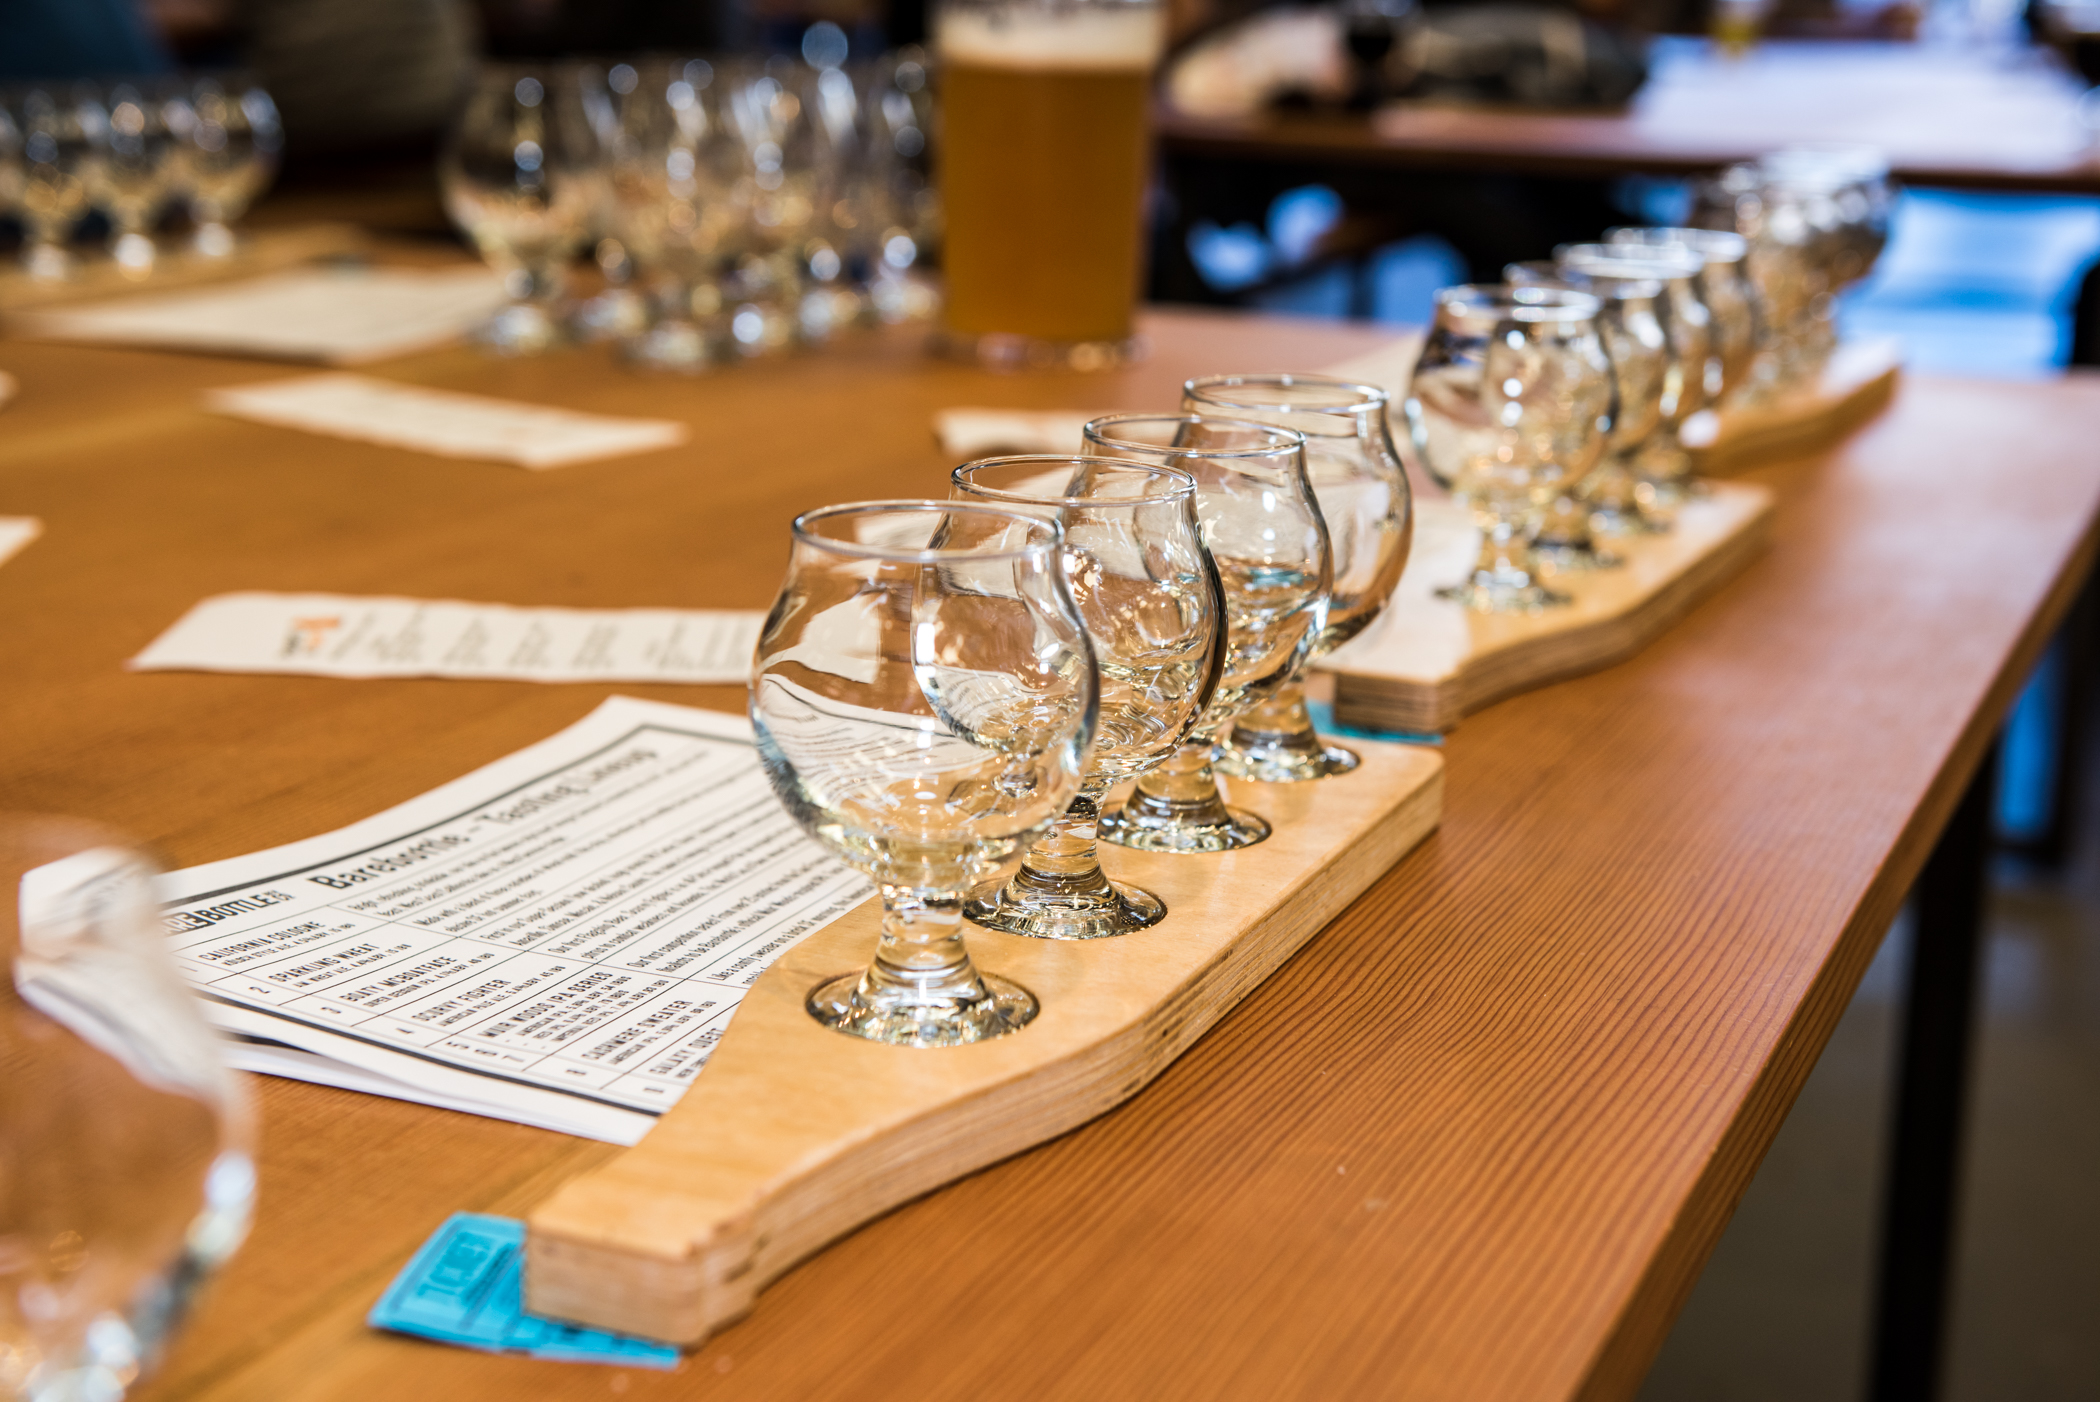 Influencer & blogger event at  Bare Bottle Brewing Company